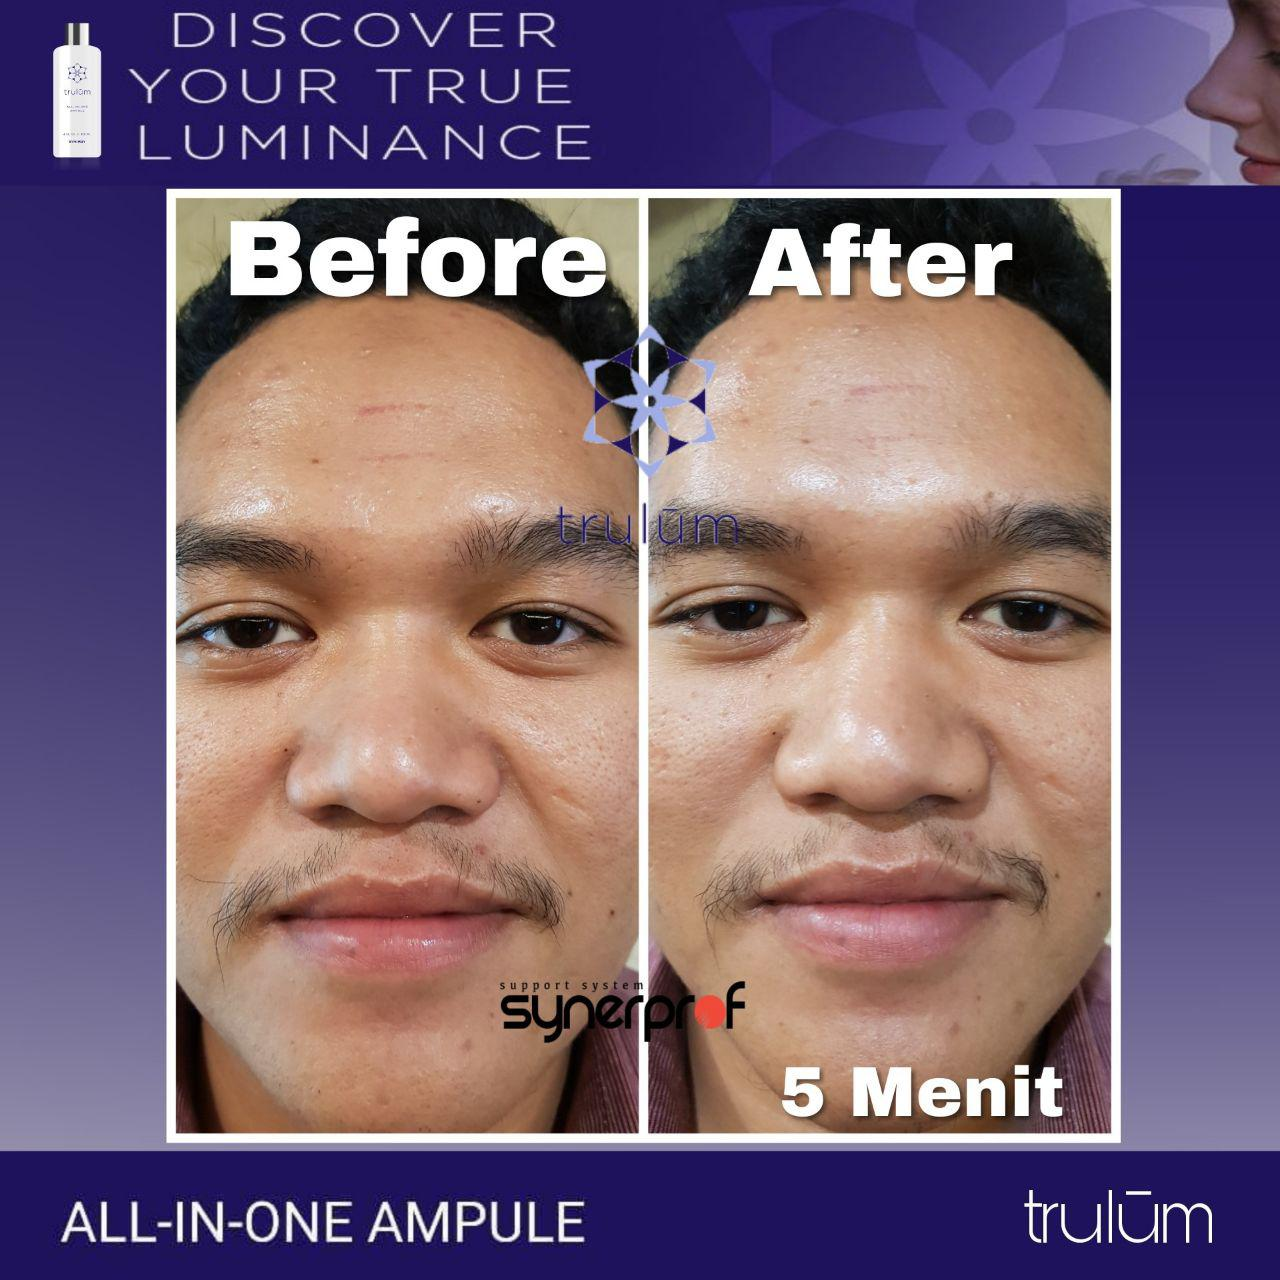 Jual Trulum All In One Ampoule Di Kotabumi Utara WA: 08112338376